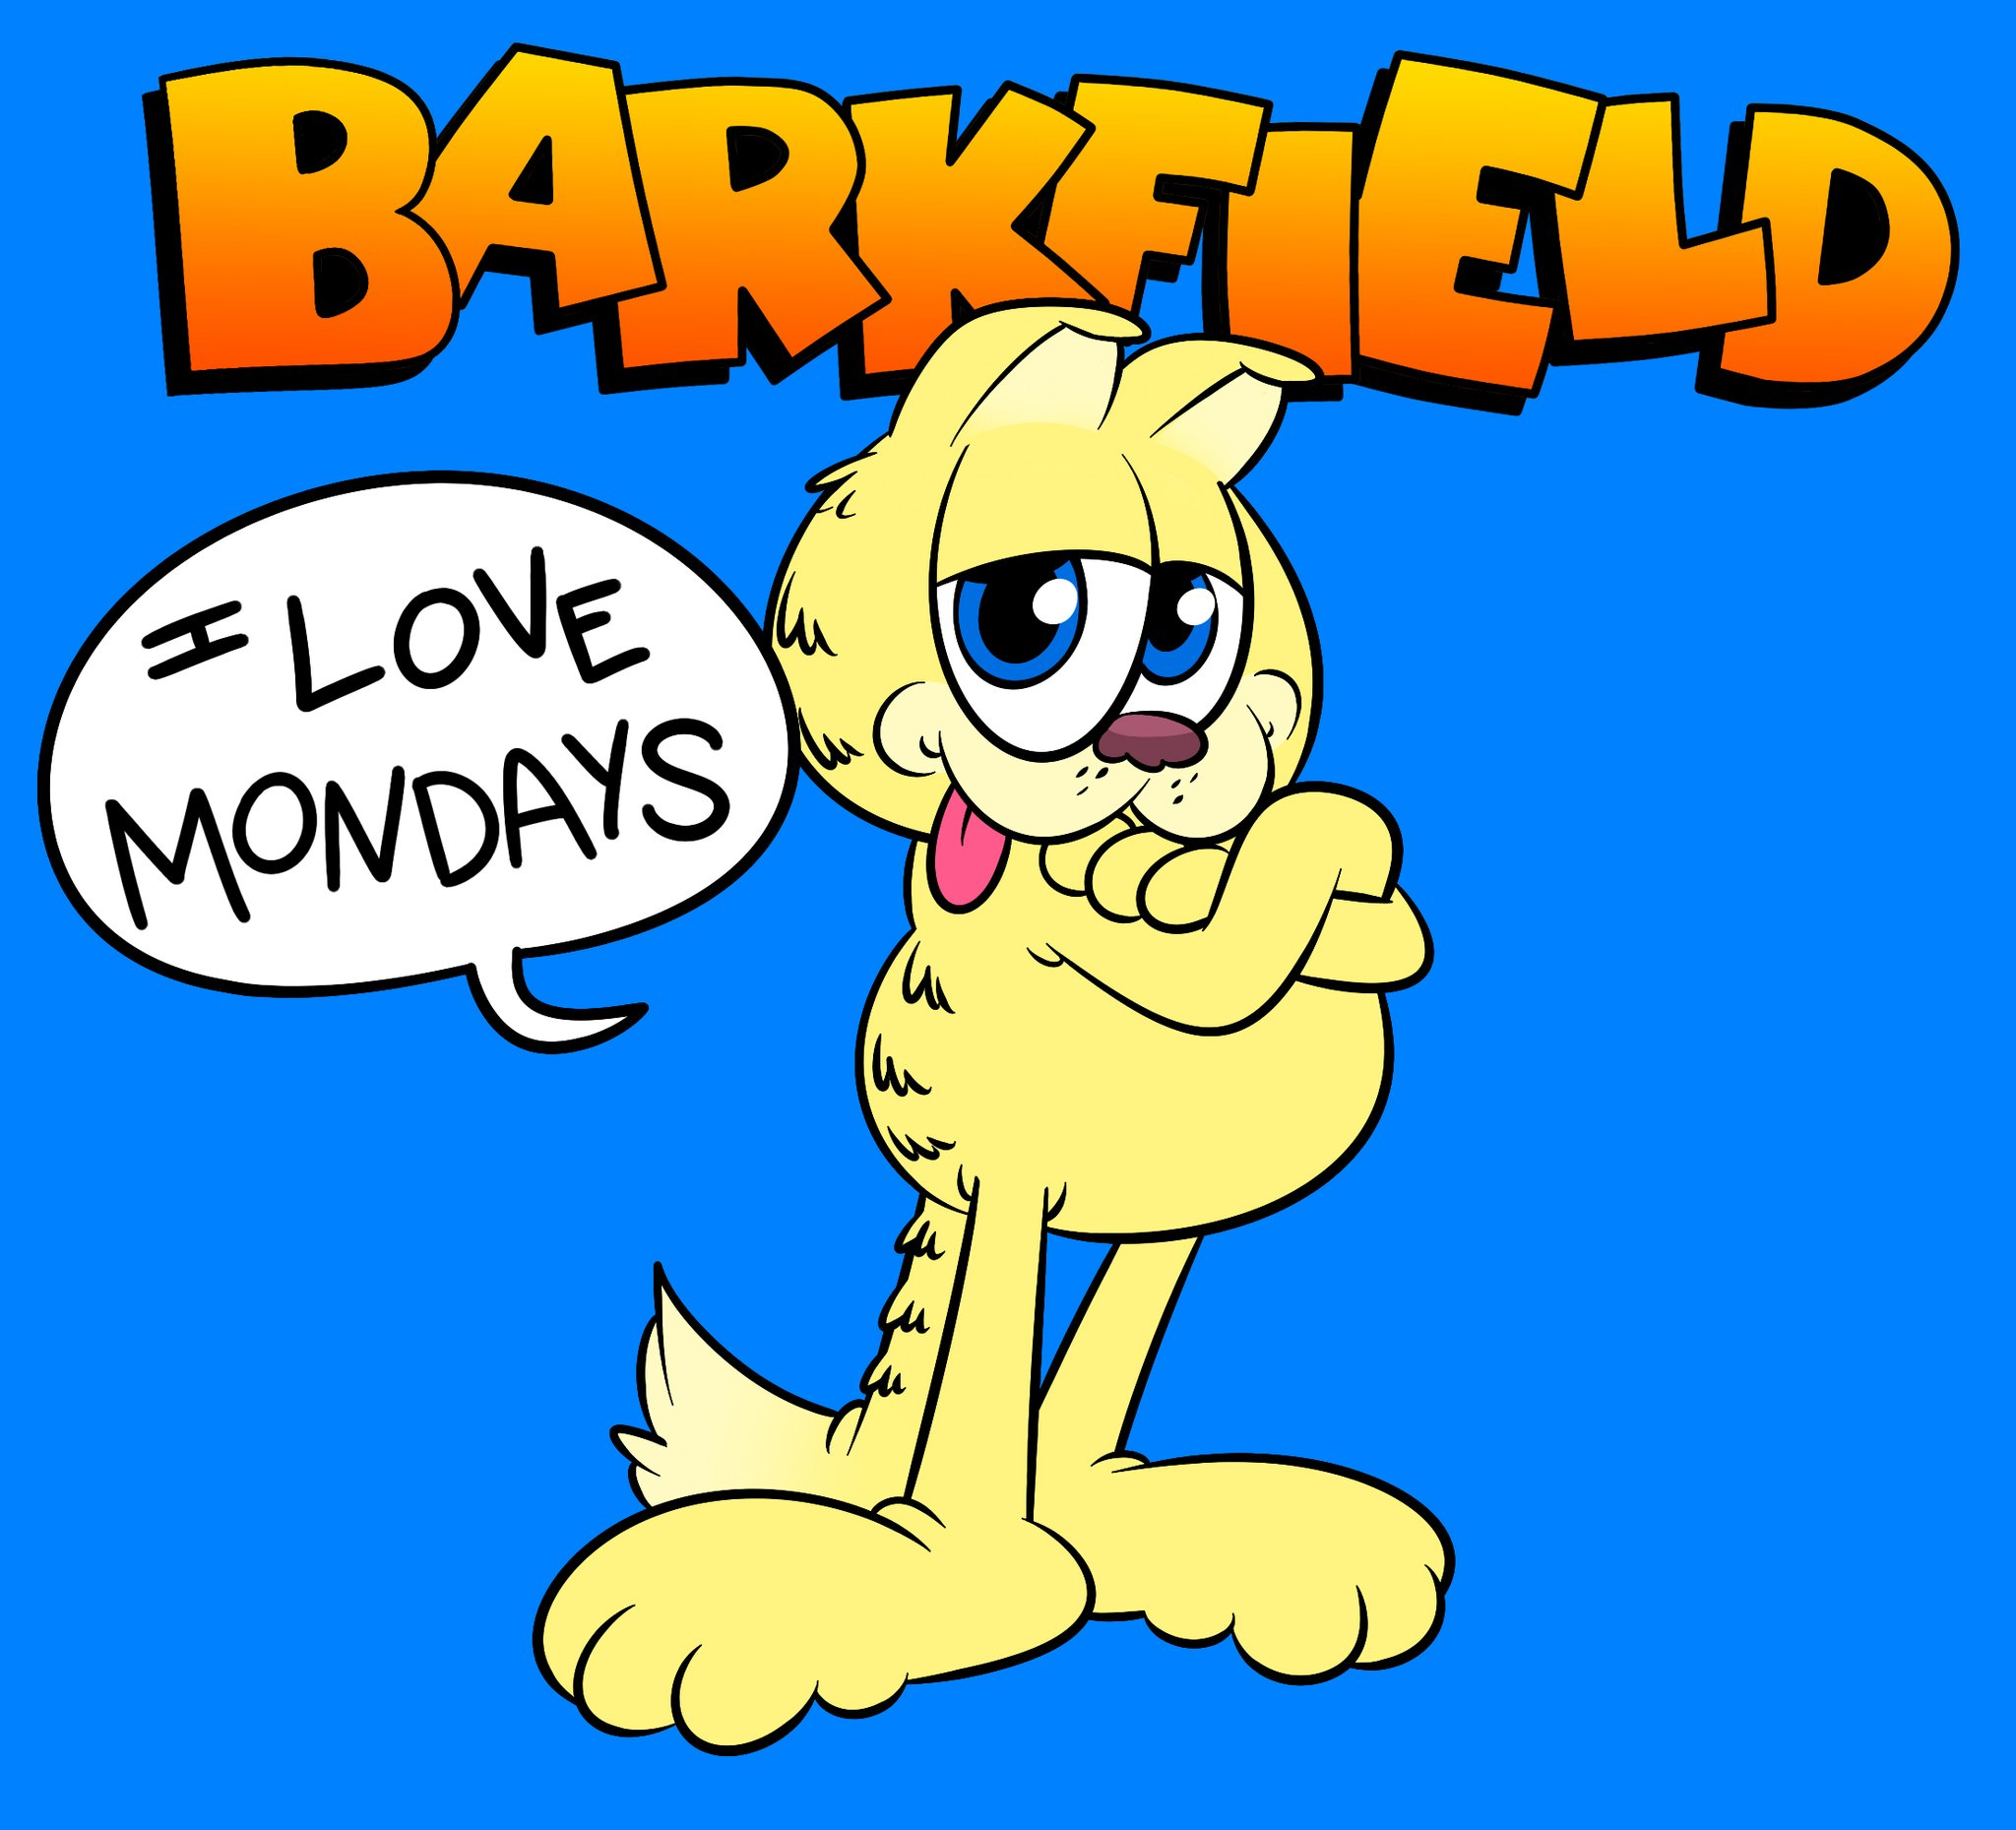 Barkfield - He loves Mondays because Mondays are things and he loves all things.